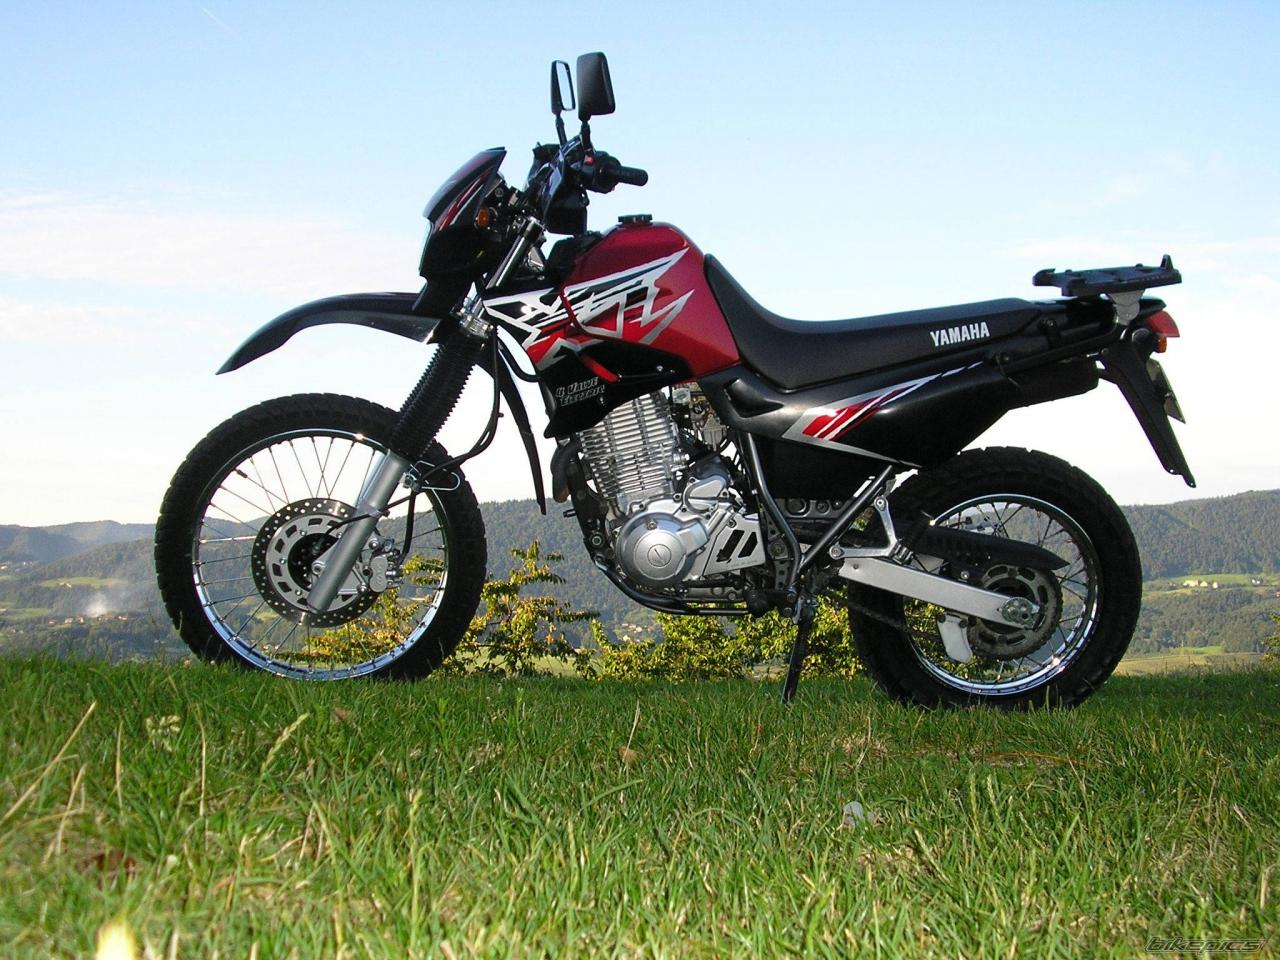 Yamaha Xt Tenere X W furthermore Xt E furthermore Maxresdefault as well Yamaha Xt Ze Mcimg Xkx likewise Hqdefault. on 1990 yamaha xt 600